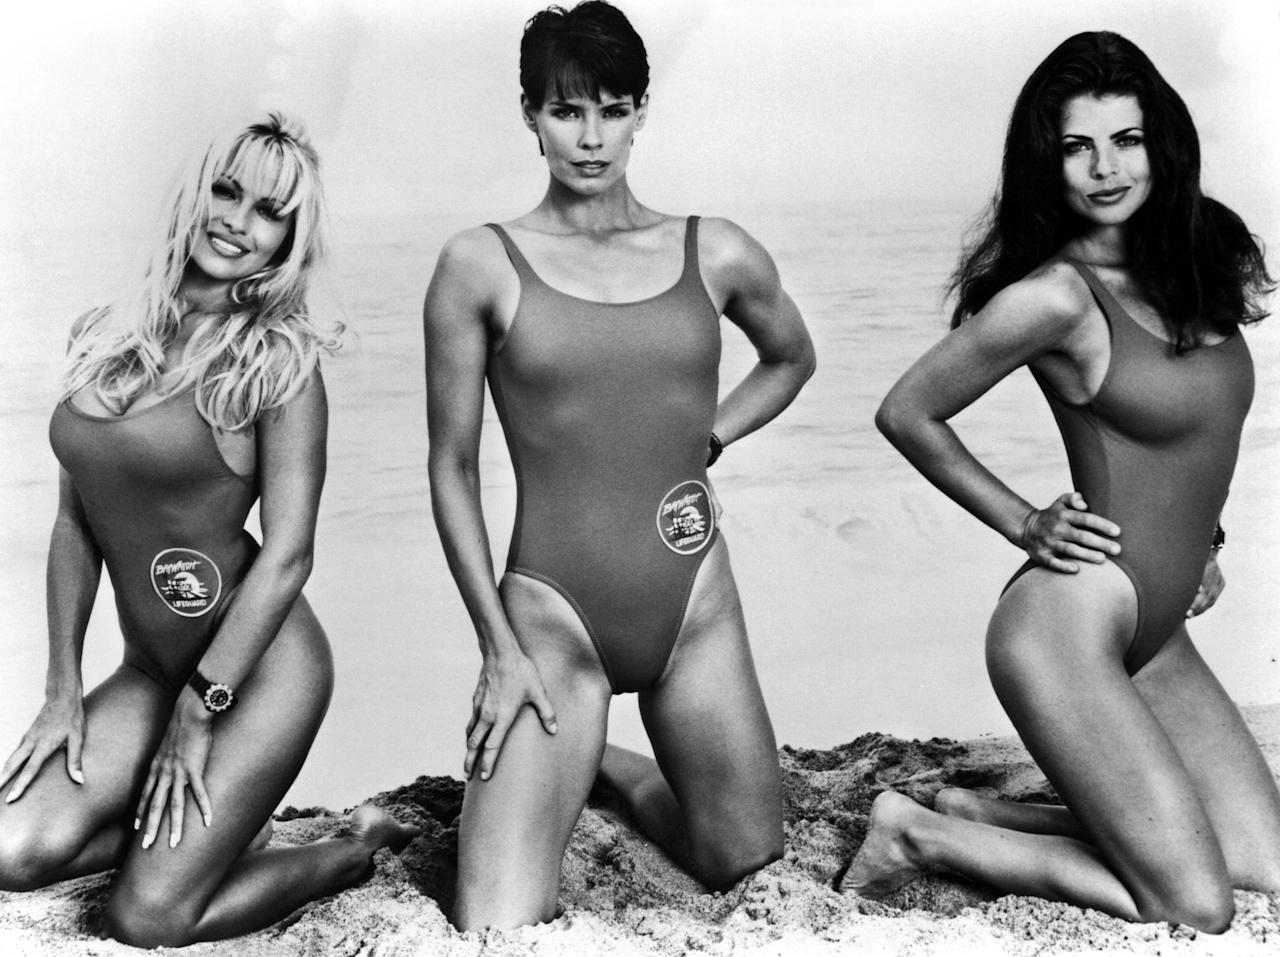 BAYWATCH, from left: Pamela Anderson, Alexandra Paul, Yasmin Bleeth, 1989-2001. ©Pearson Television/courtesy Everett Collection